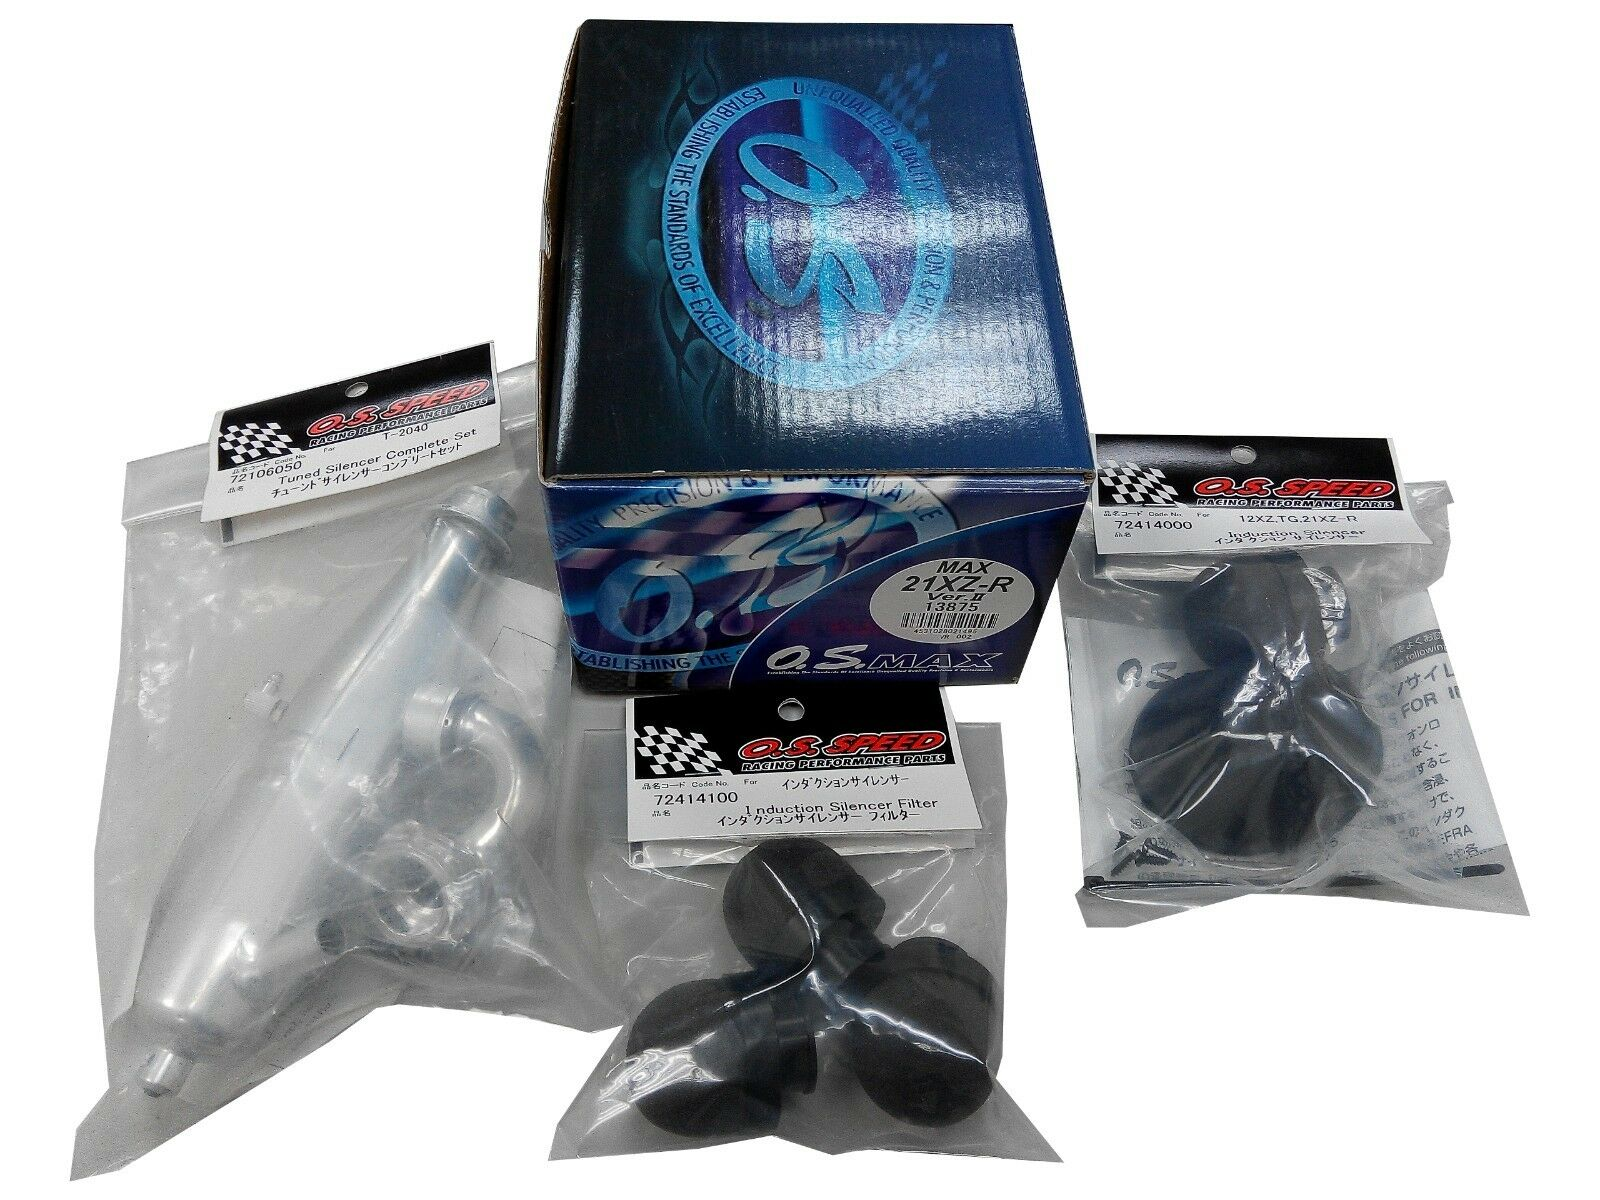 O.S. Engines 13875 21XZ-R + PIPE + INDUCTION SILENCER + FILTER(COMPLETE SET)